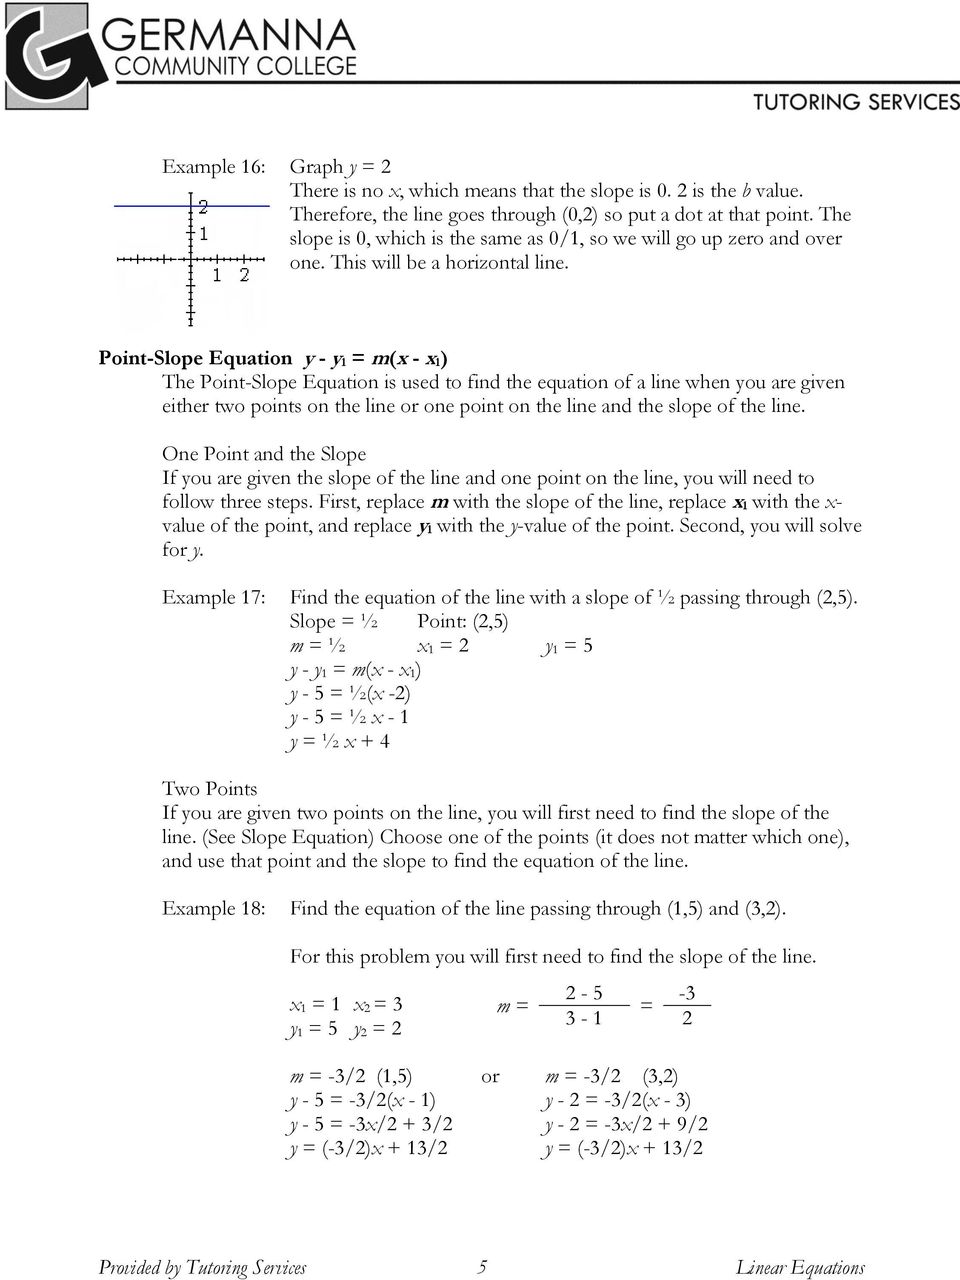 Point-Slope Equation y - y 1 = m(x - x 1) The Point-Slope Equation is used to find the equation of a line when you are given either two points on the line or one point on the line and the slope of